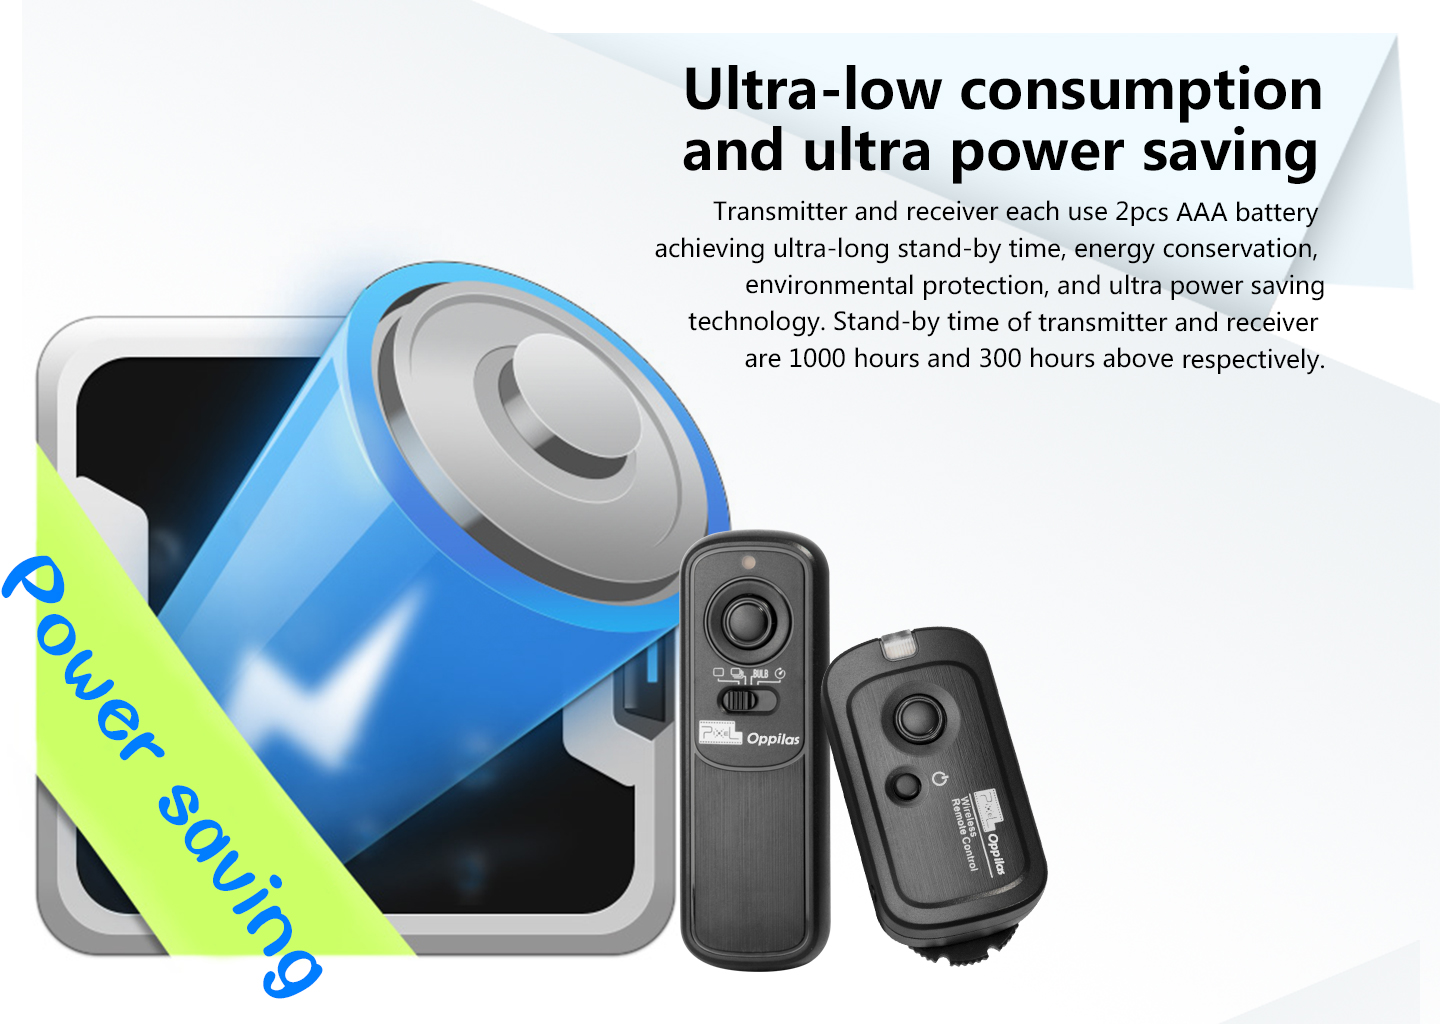 Ultra-low consumption and ultra power saving